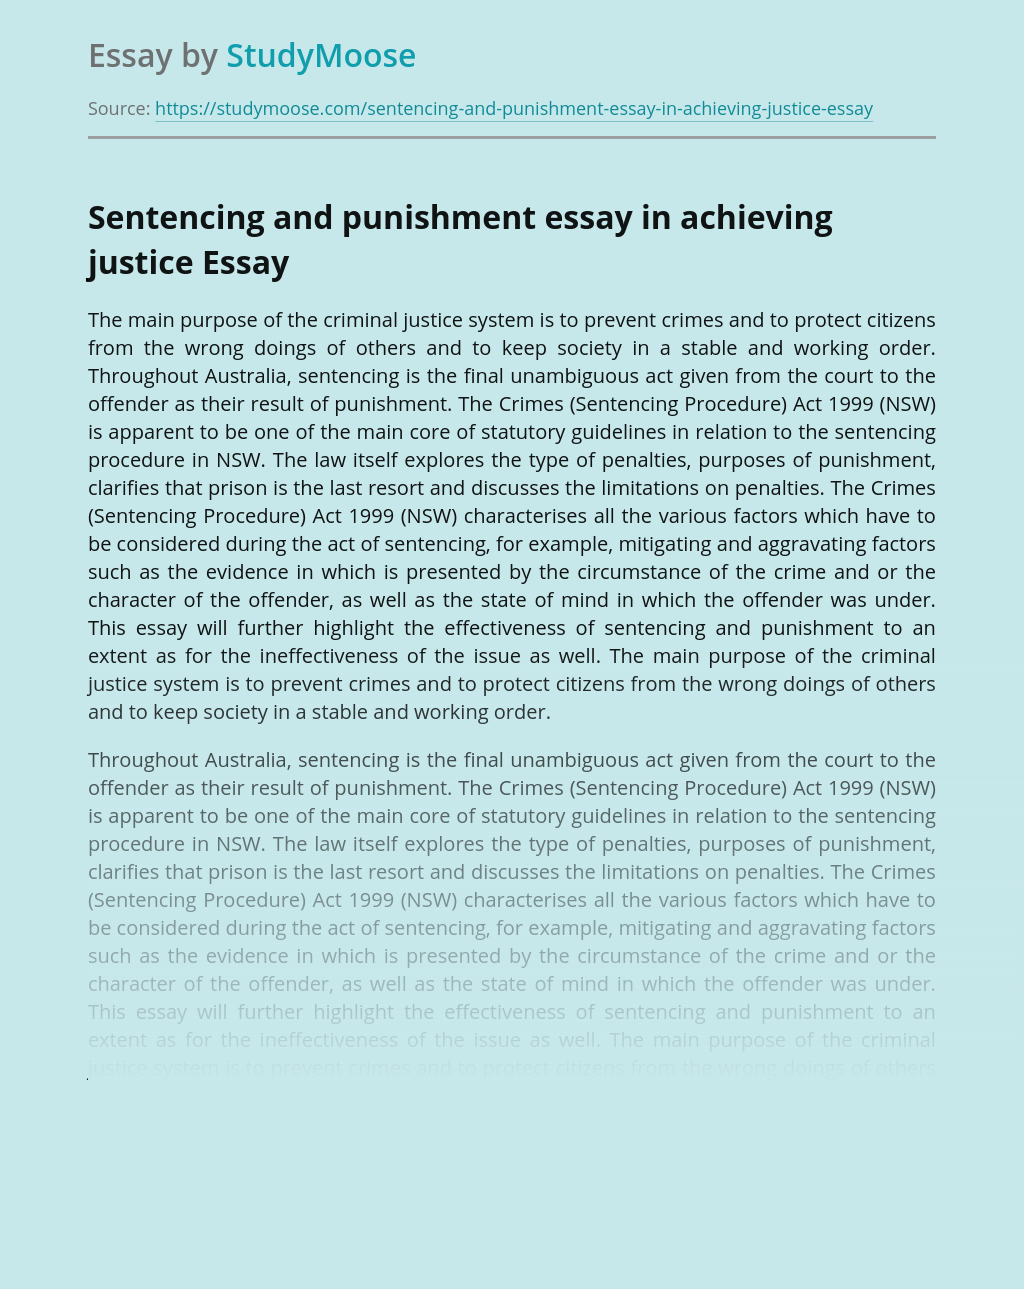 Sentencing and punishment essay in achieving justice